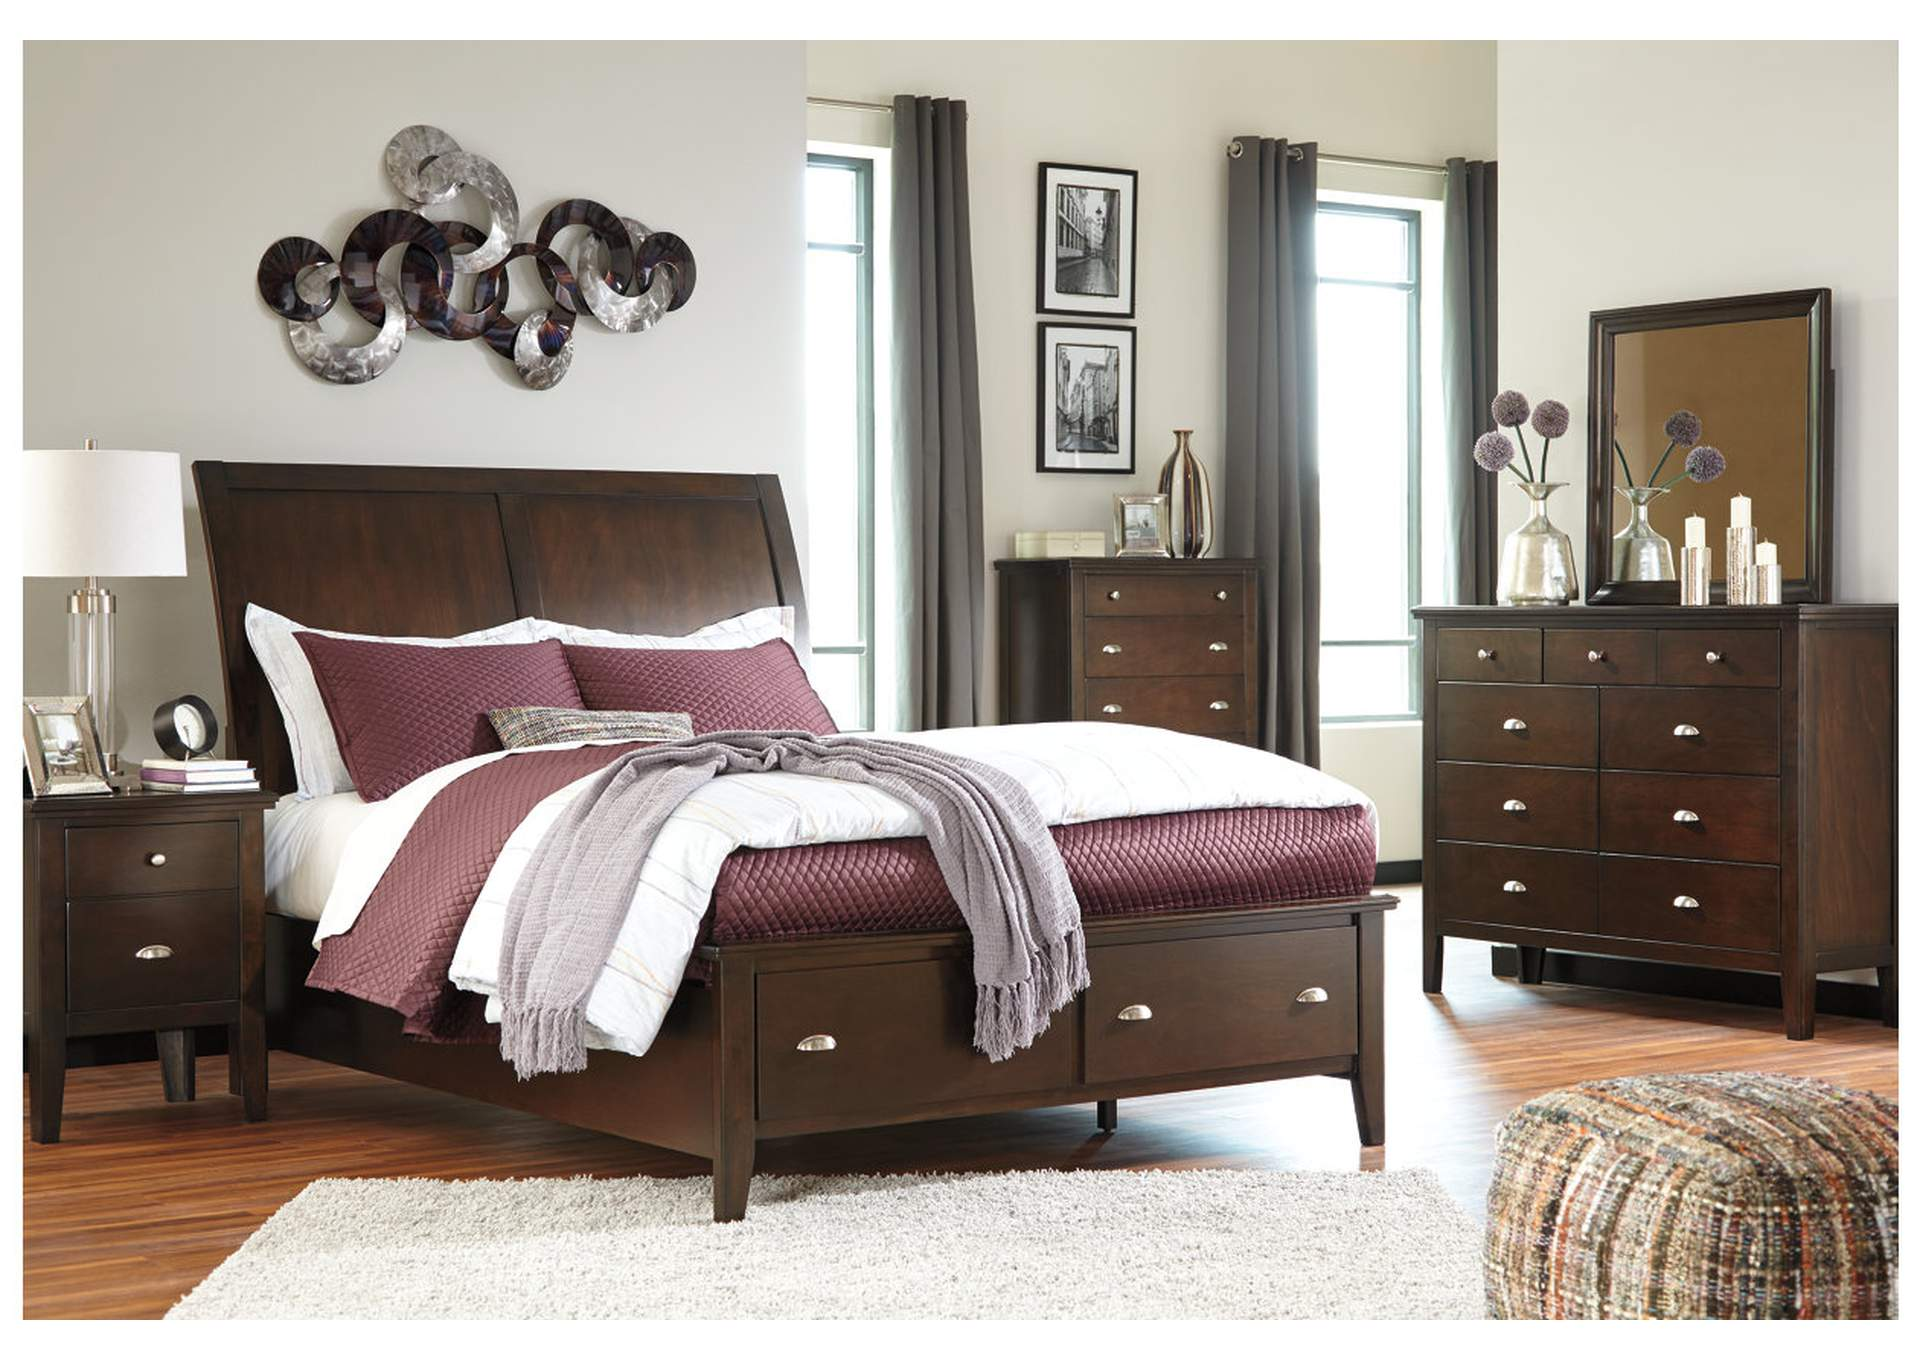 Evanburg Brown Queen Sleigh Storage Bed w/Dresser, Mirror & Drawer Chest,Signature Design By Ashley